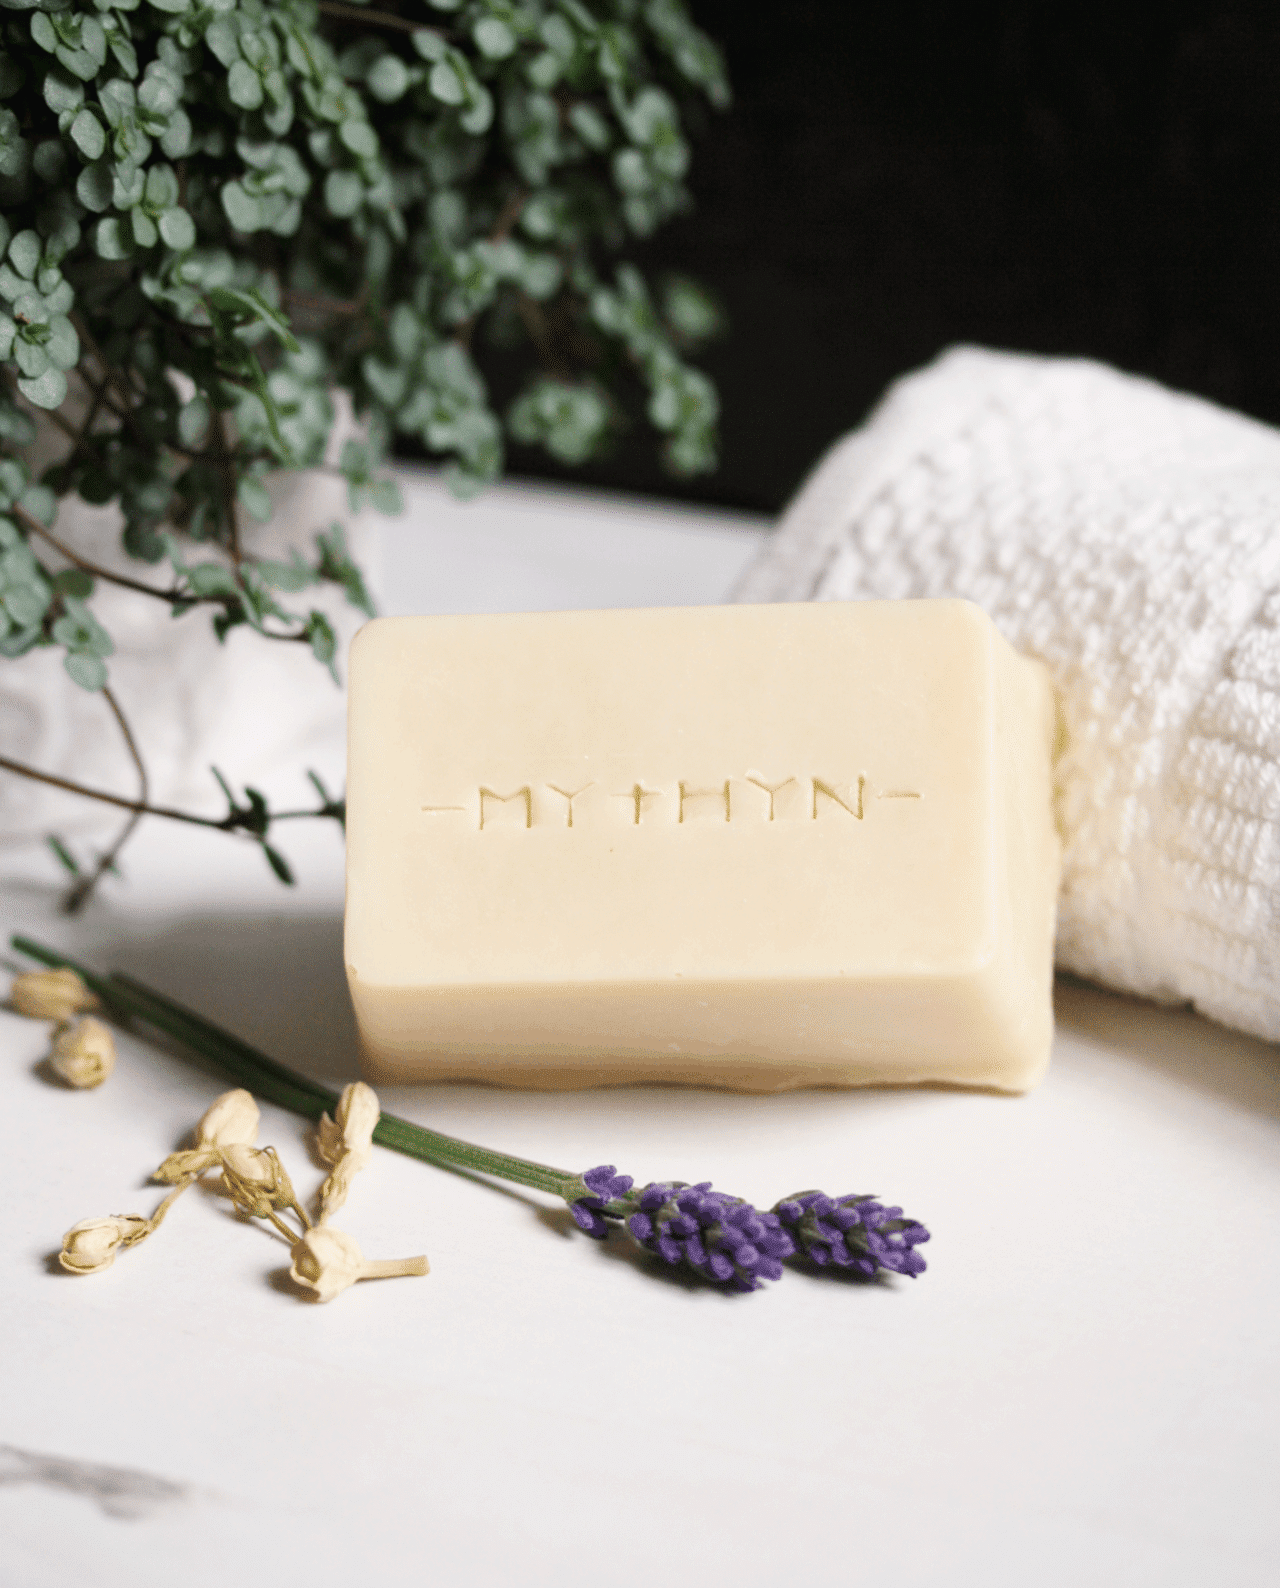 SPIRIT Silk Soap - MYTHYN